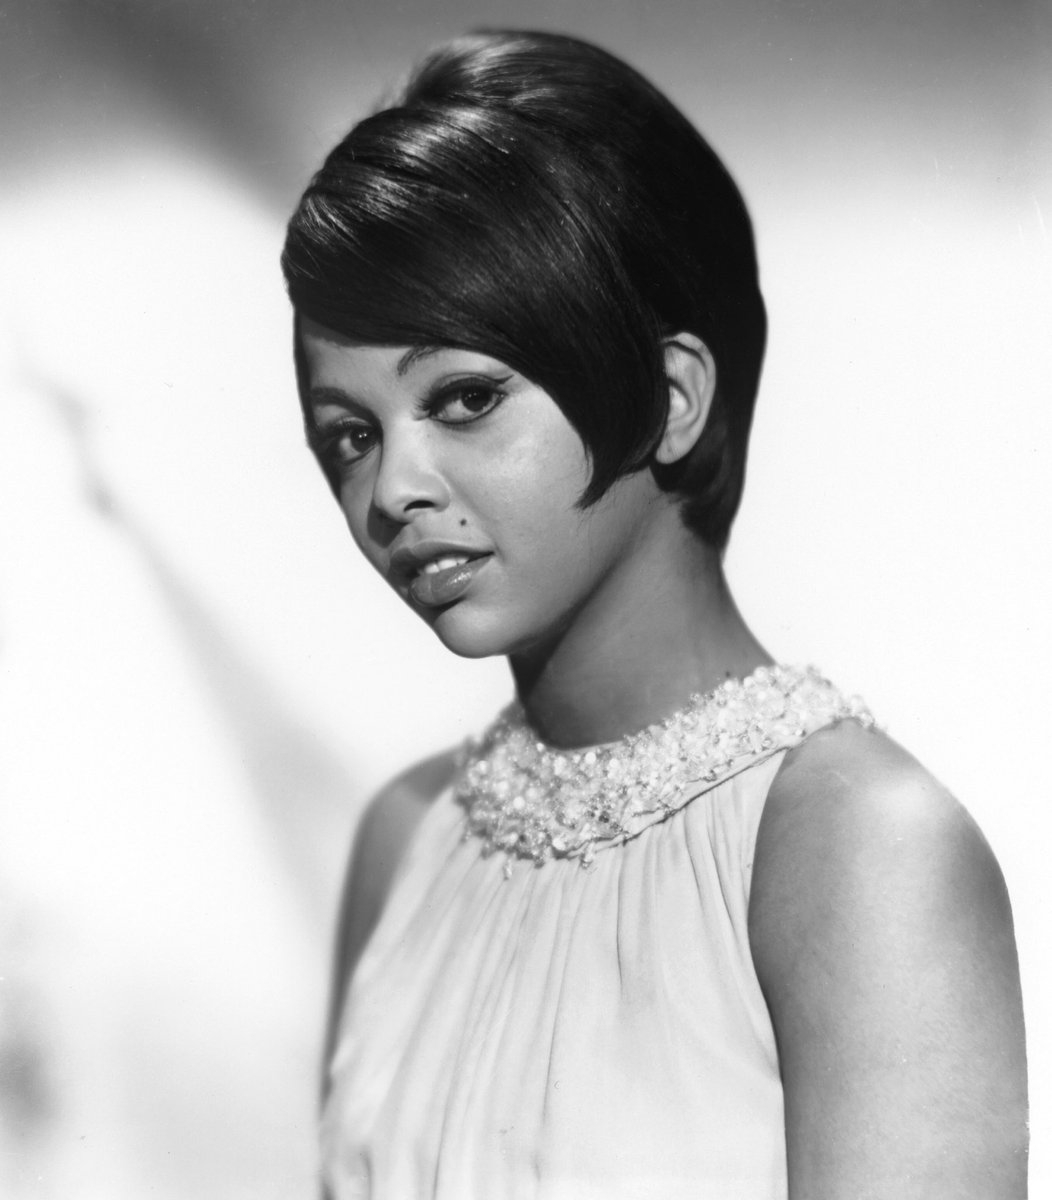 What do these artists have in common? They were all #GoneTooSoon.. tune in to tonight's #UnsungThemeNight beginning at 8/7c #TammiTerrell #DonnyHathaway #PhyllisHyman<br>http://pic.twitter.com/Ar0cE00yuM